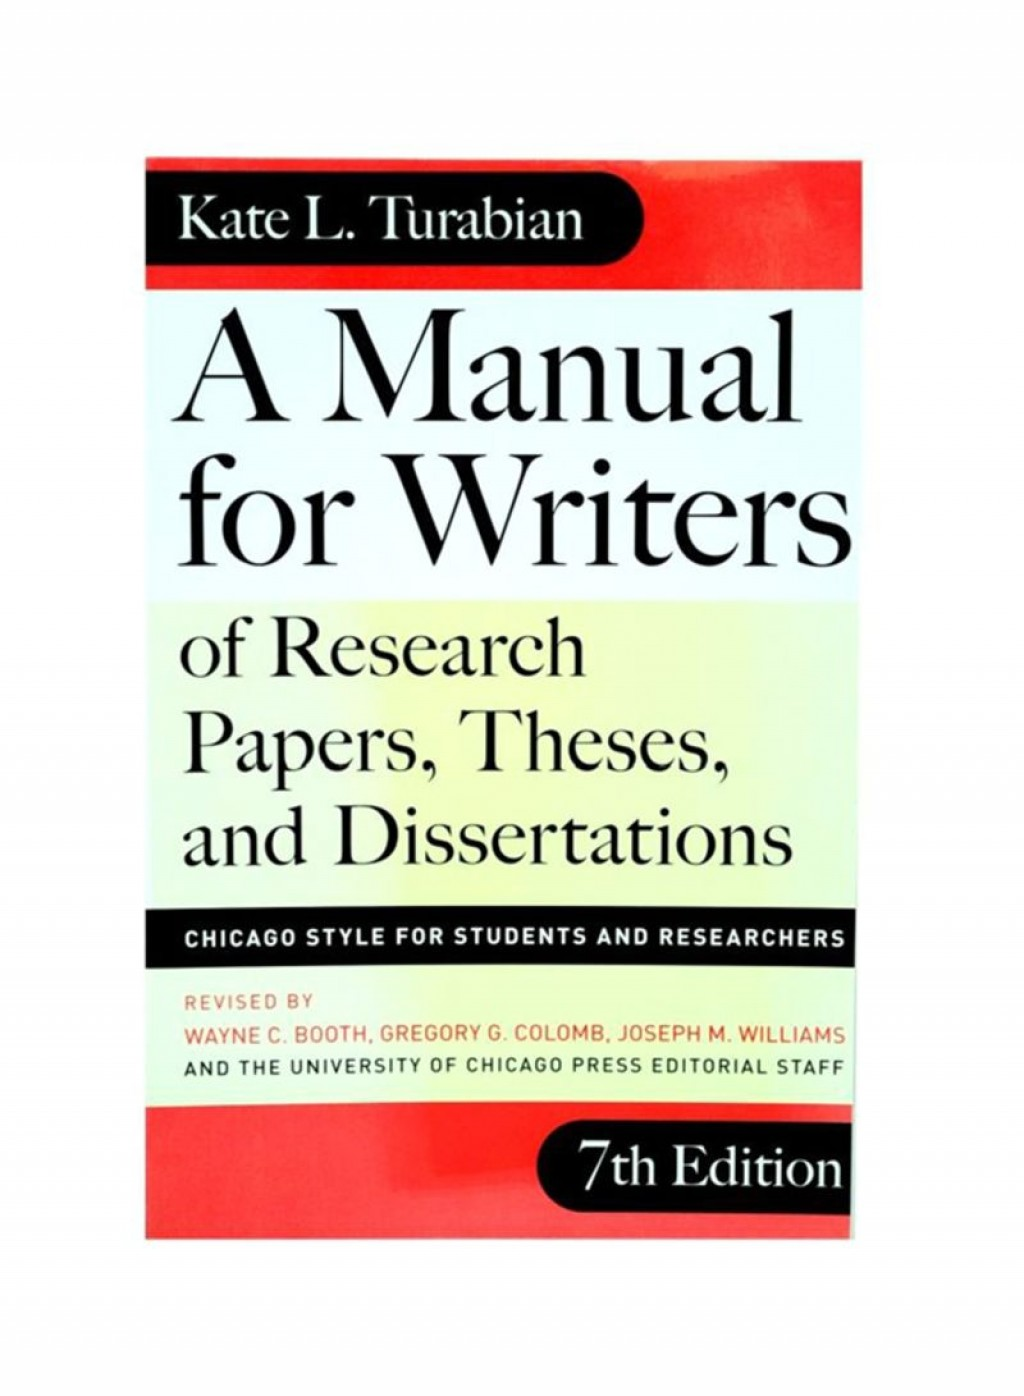 021 Research Paper N21270079a 1 Manual For Writers Of Papers Theses And Magnificent Dissertations 8th 13 A 9th Edition Apa Large